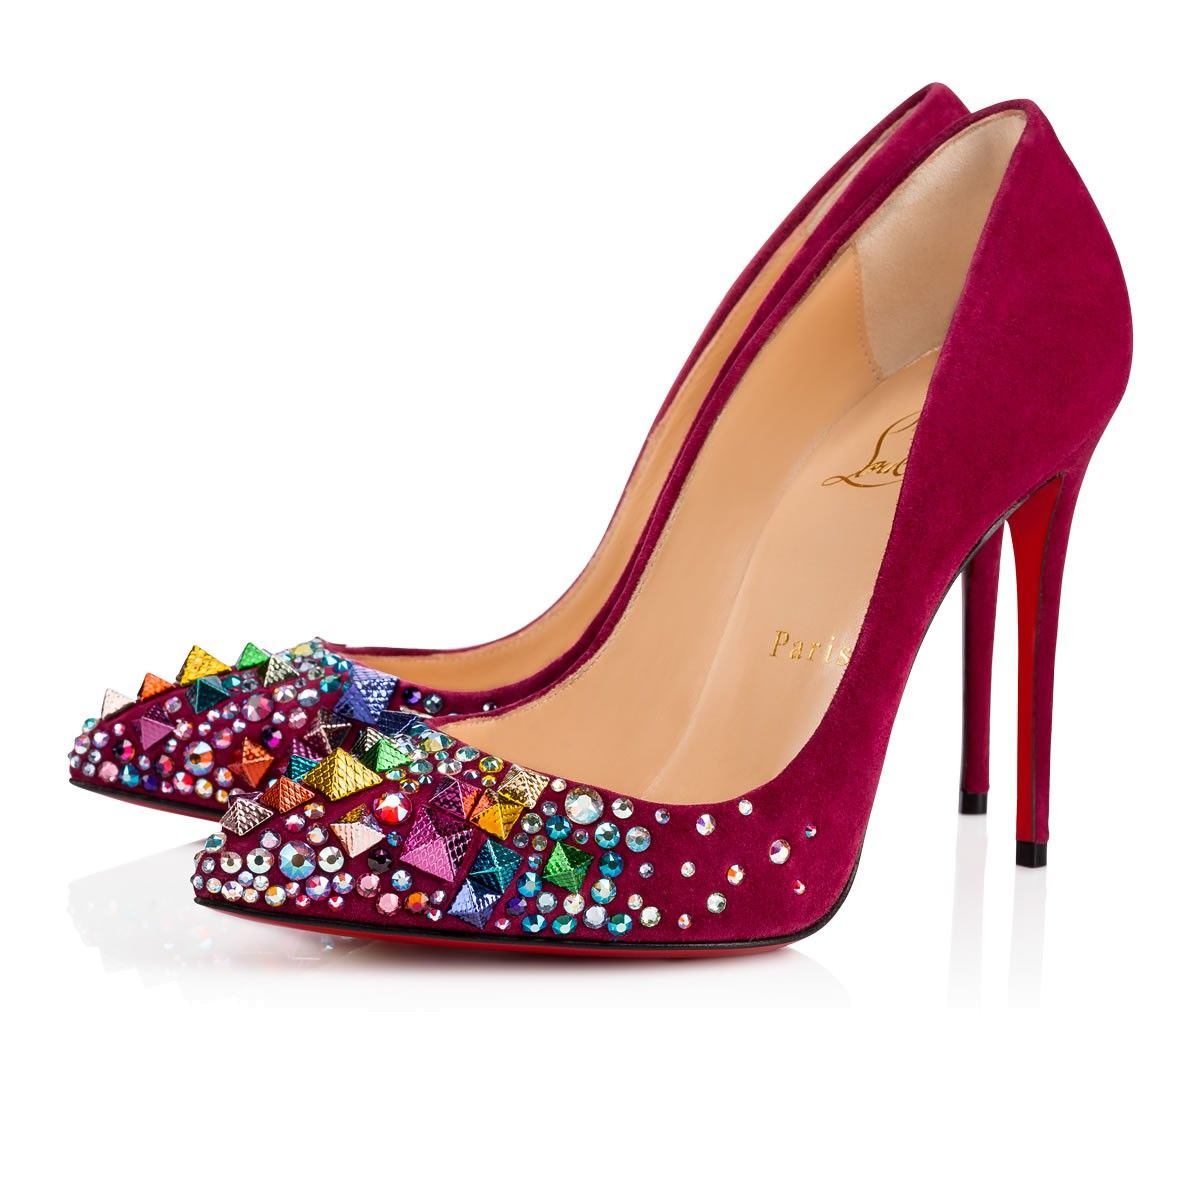 Louboutin Escarpin tuto Chaussure Offres Meilleures Christian b7fyvY6g